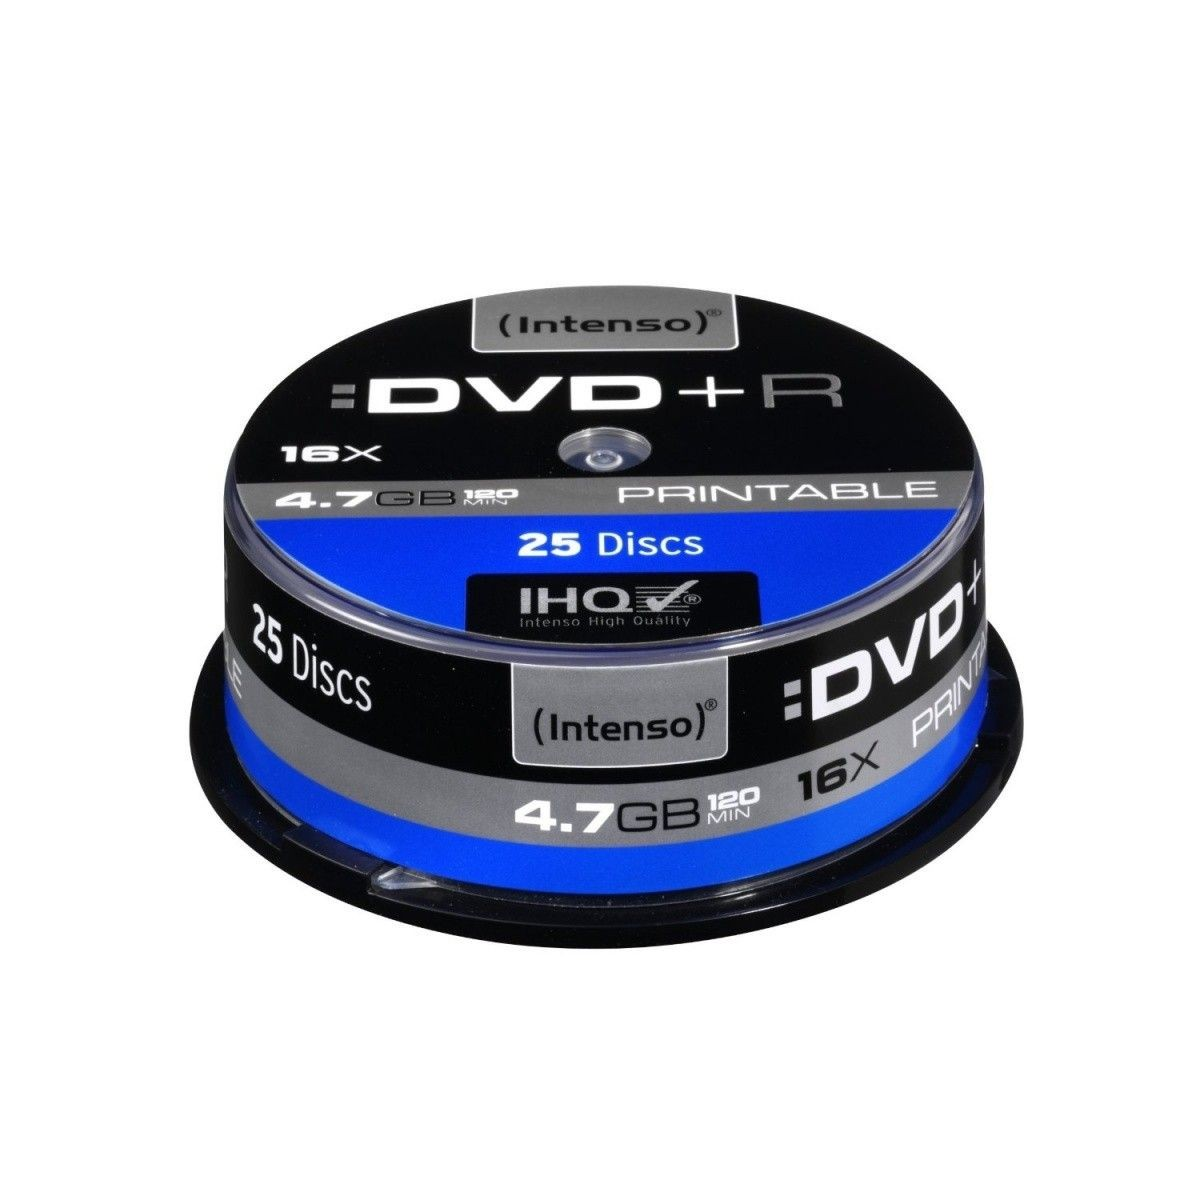 Intenso DVD+R 4.7GB 16x Printable Extra Fine Matt Fullface (cake box, 25szt)